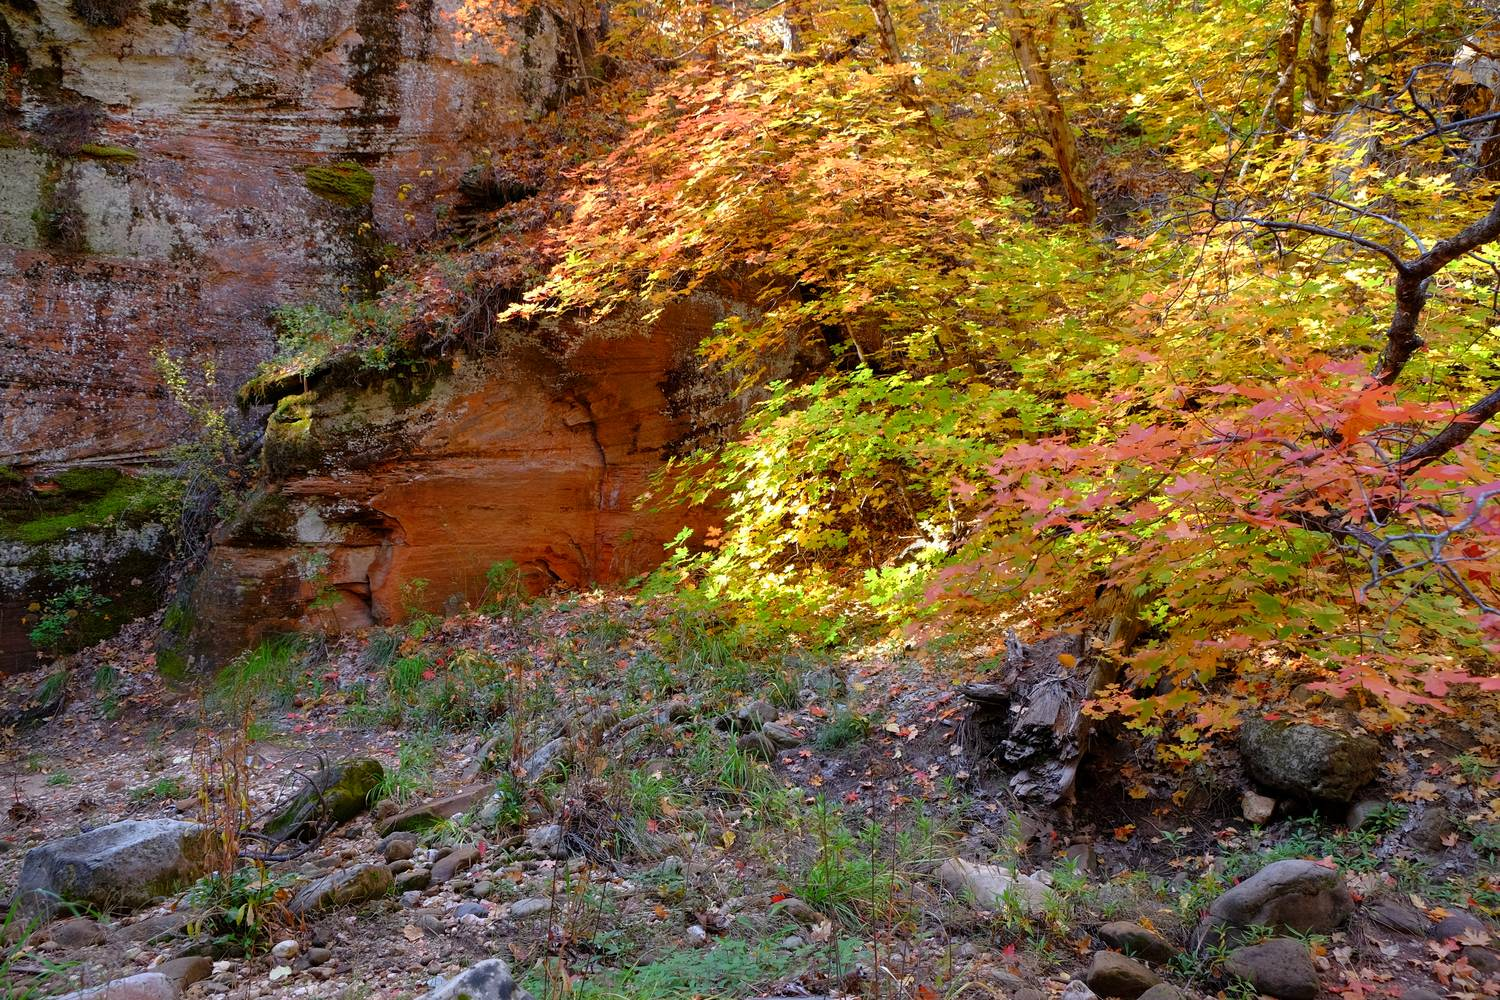 As you continue you enter the canyon where the temperature becomes quite pleasant and the colors start to explode.